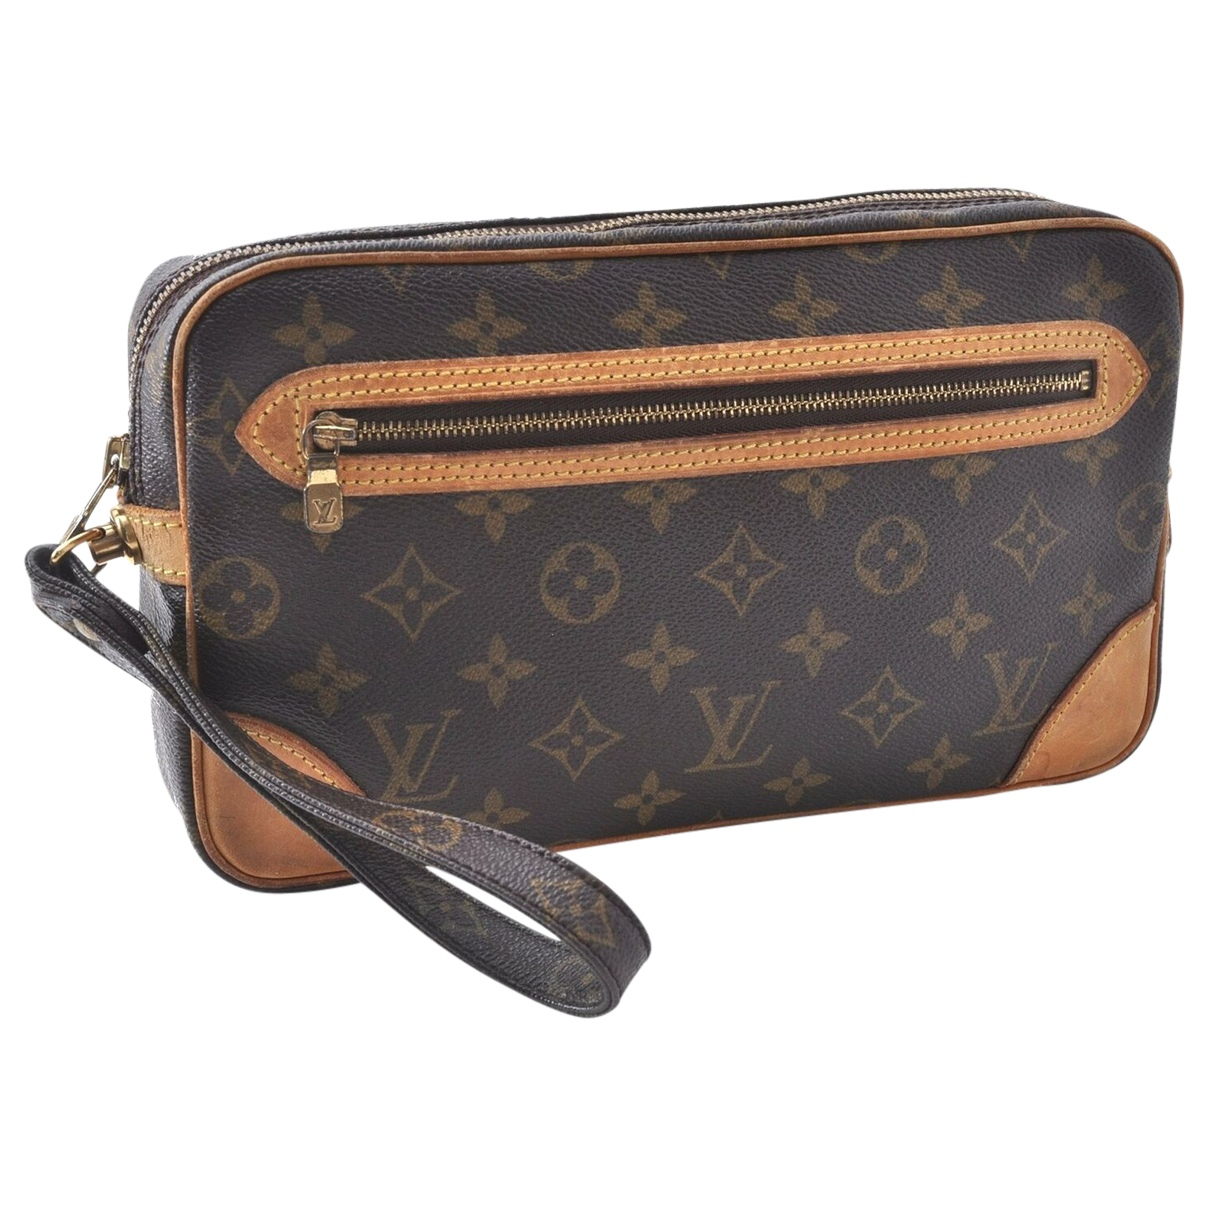 Pochette Marly Dragonne de Lona Louis Vuitton